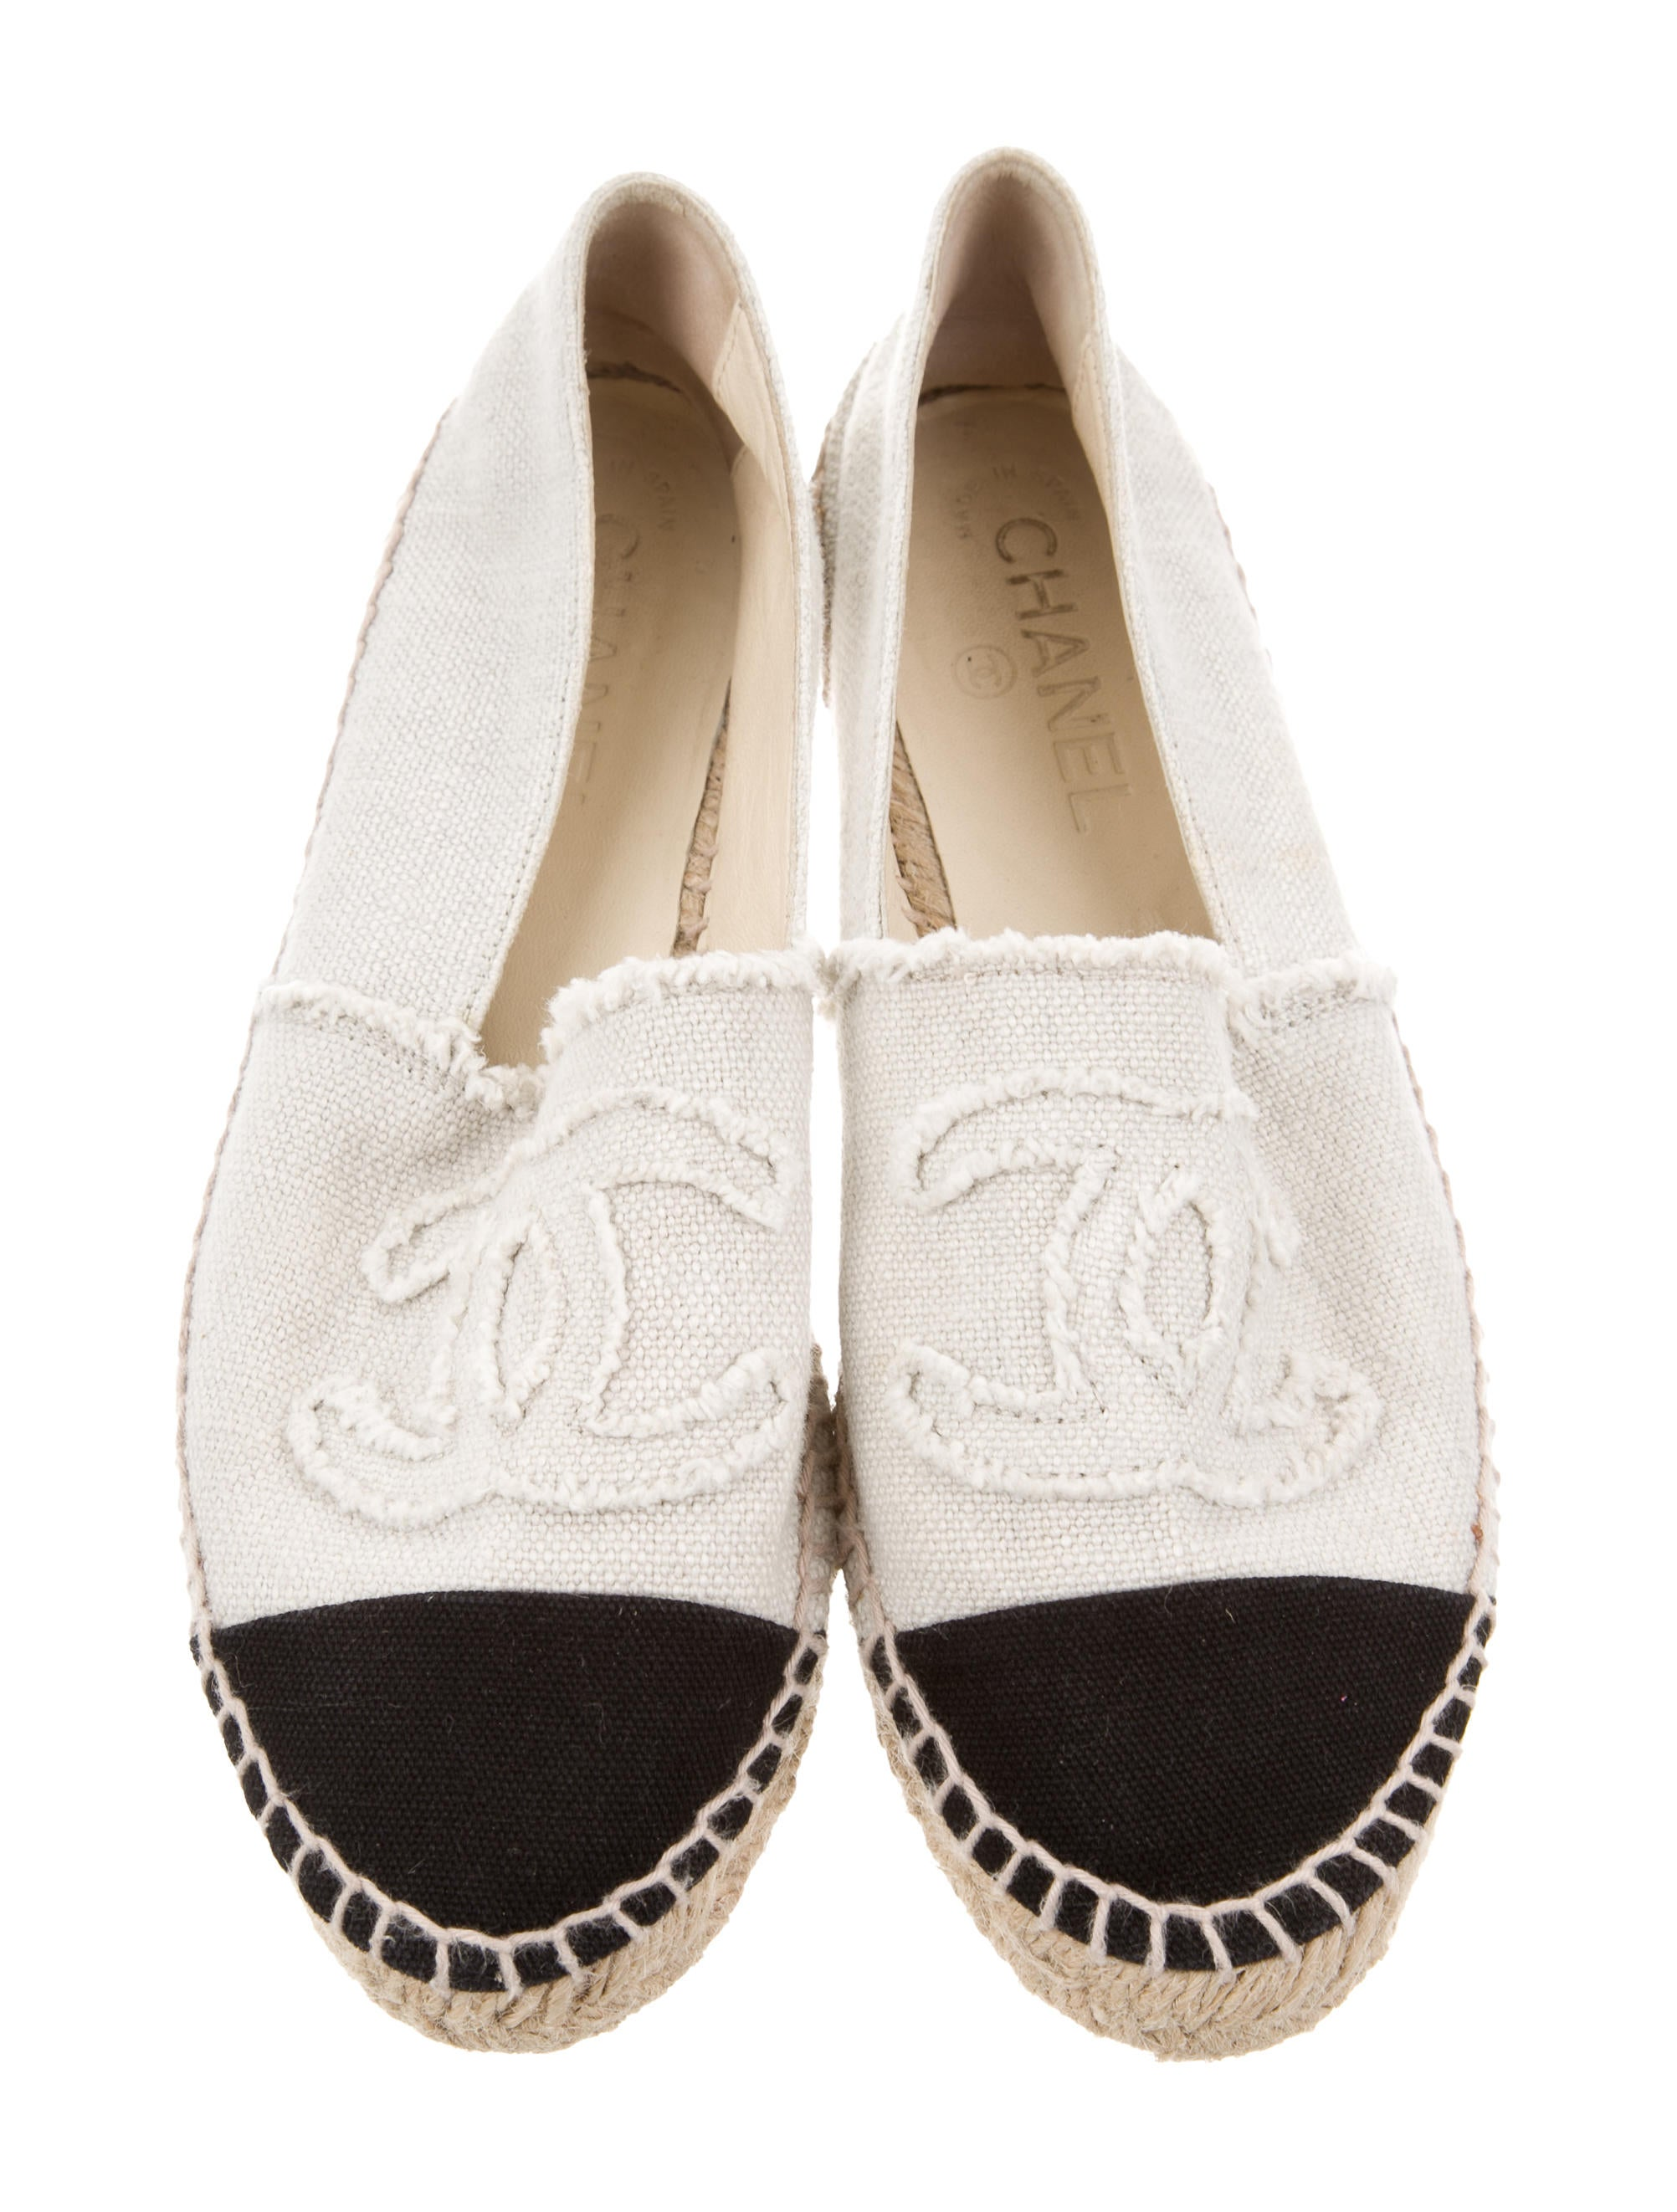 chanel canvas espadrille flats shoes cha198833 the